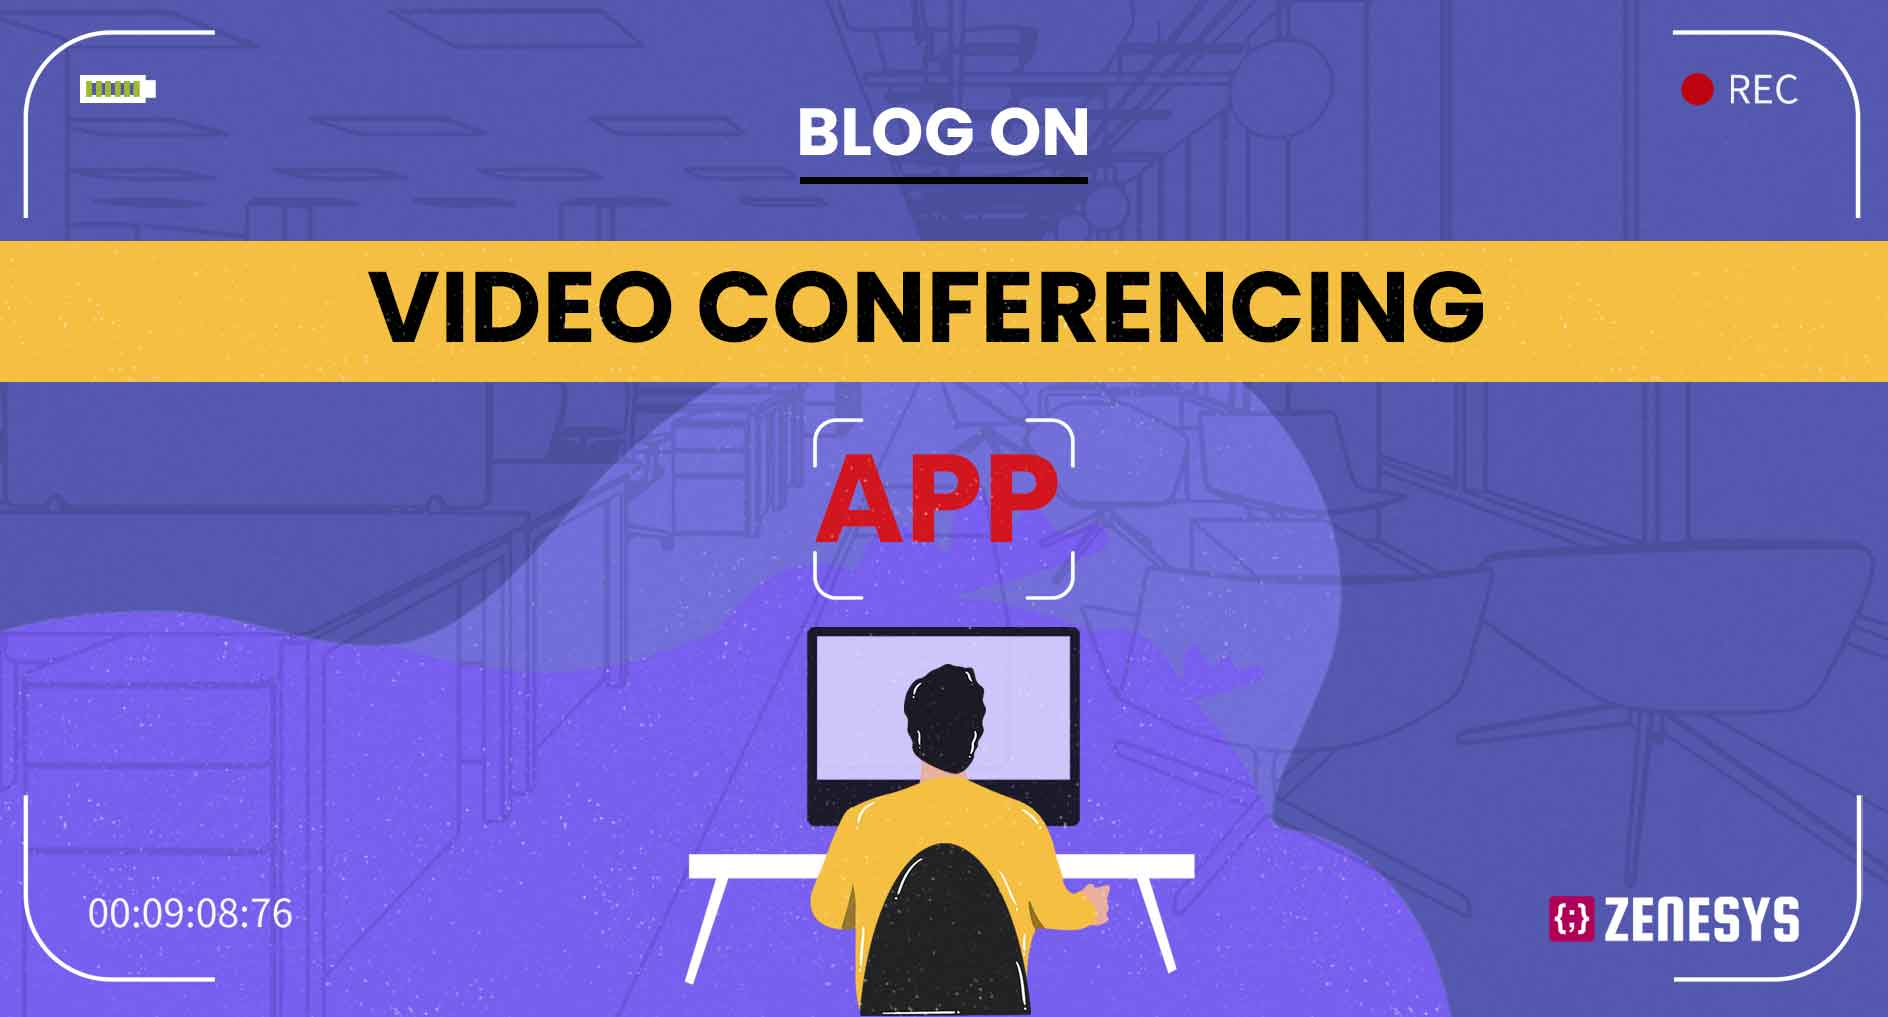 How to build a Video Conferencing App like Zoom, Skype?